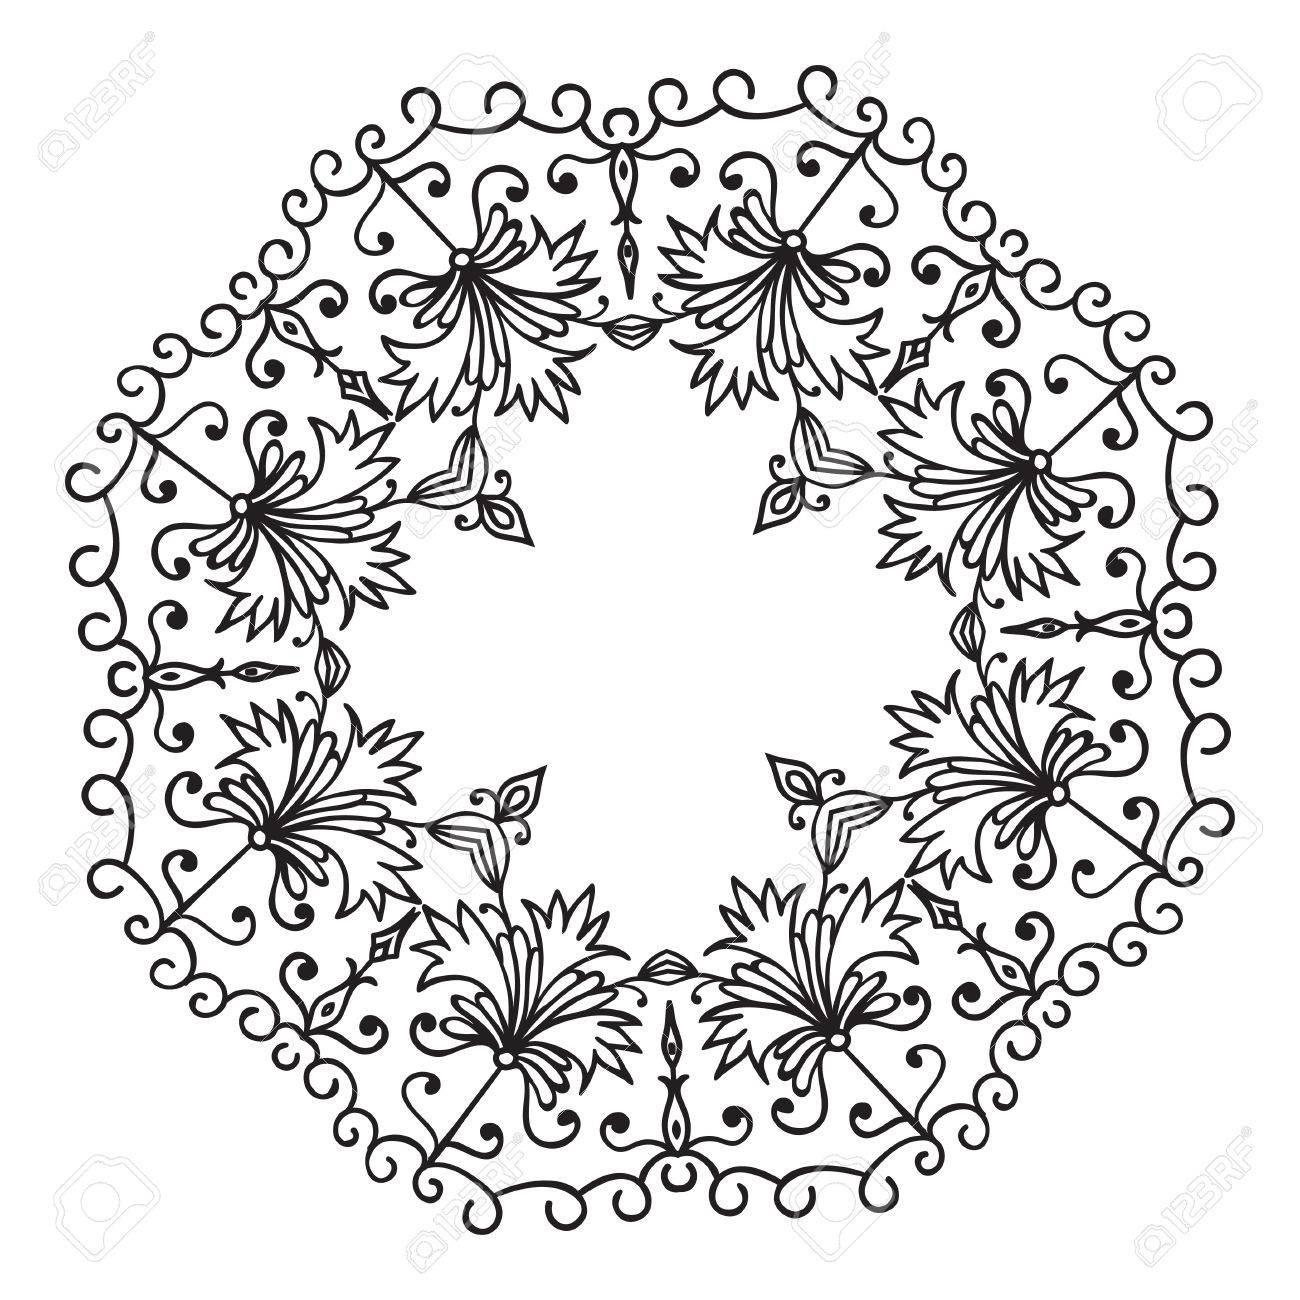 Hand drawing zentangle floral decorative frame black and white hand drawing zentangle floral decorative frame black and white flower mandala vector illustration mightylinksfo